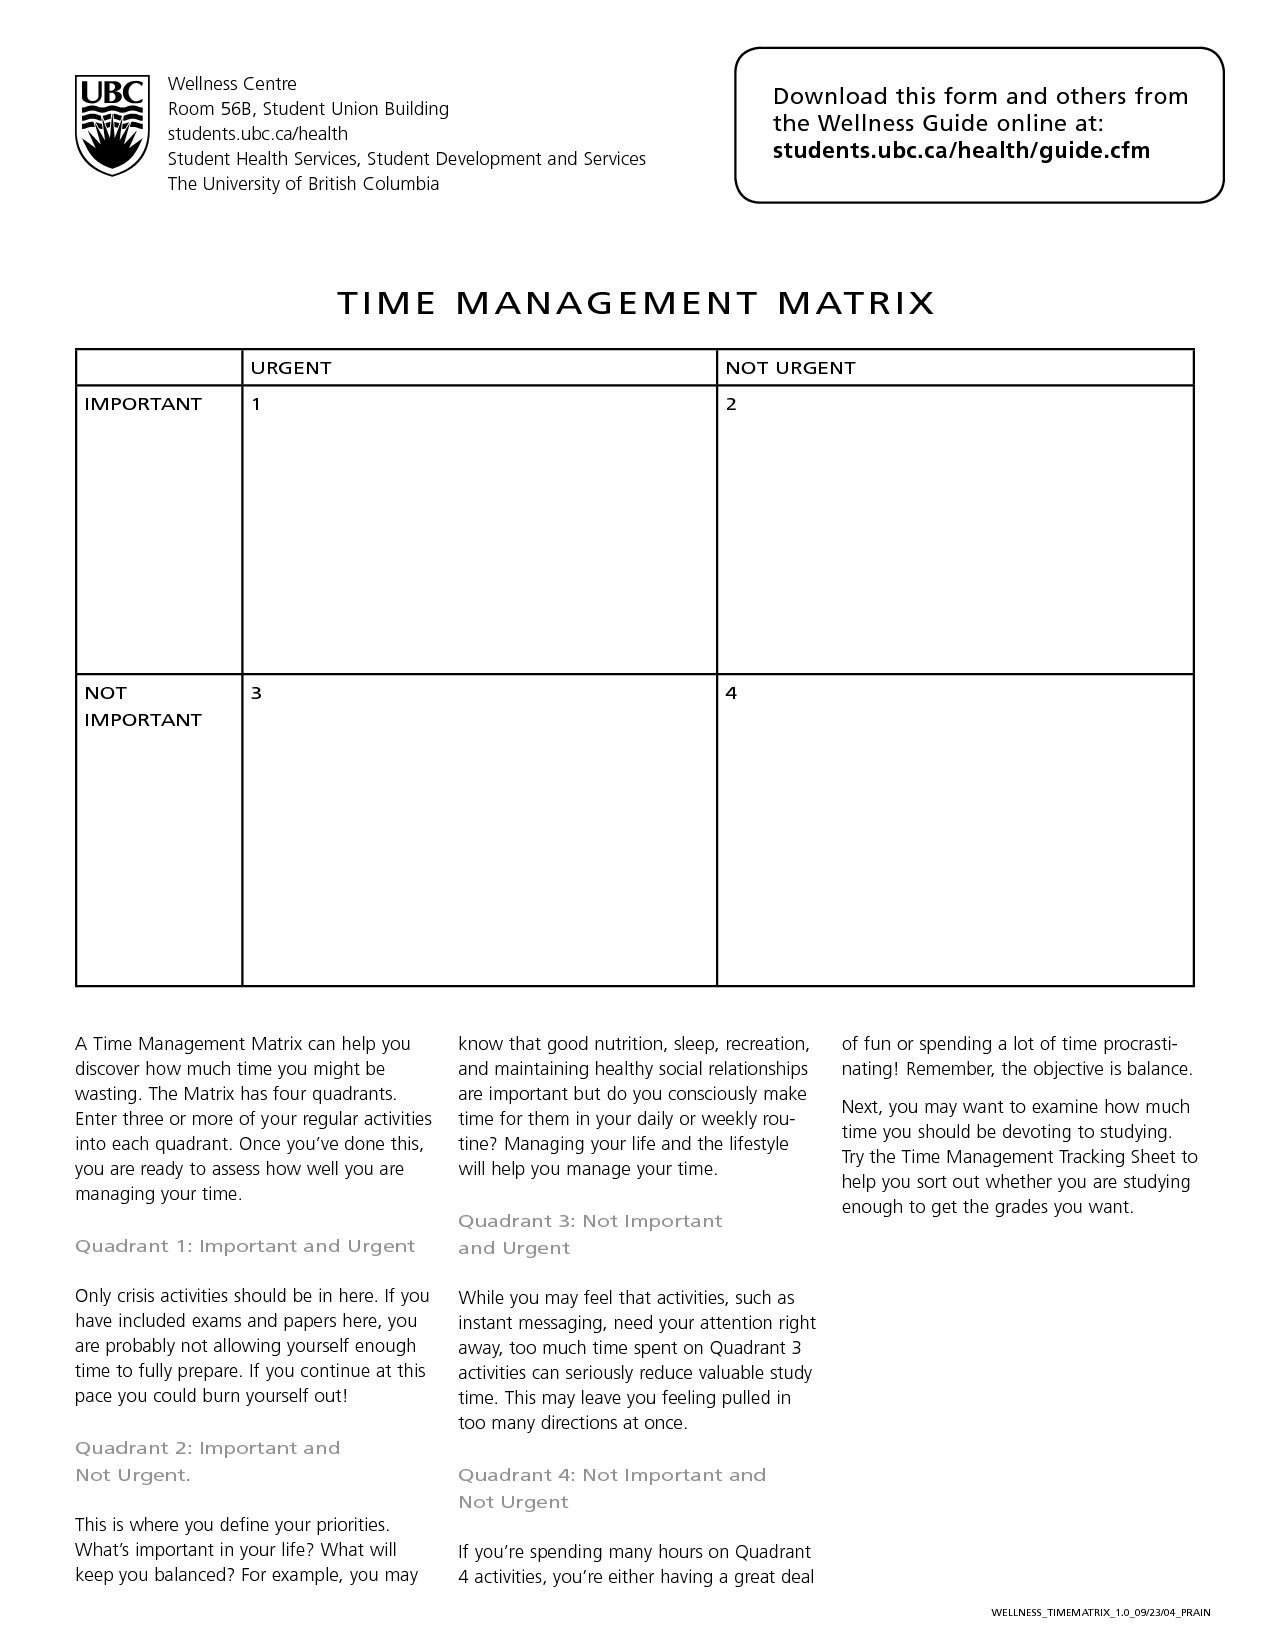 15 Best Images Of Time Management Worksheet